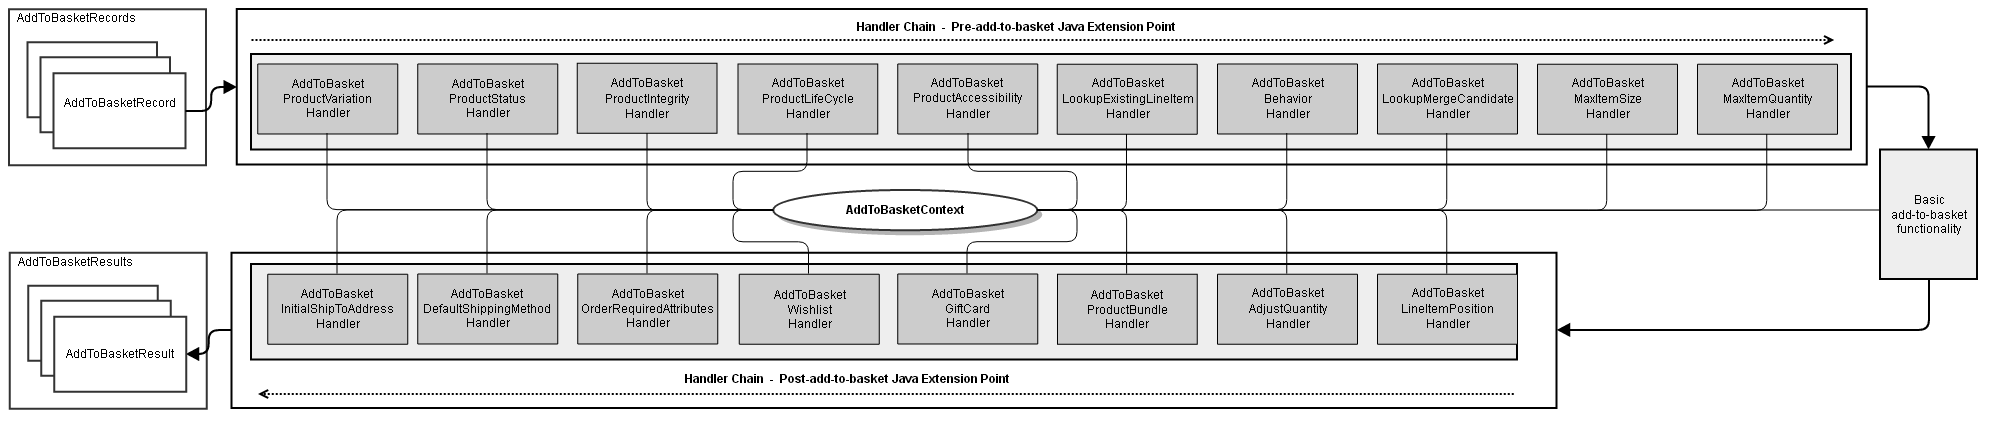 concept_basket_handling_add_to_basket_handler_chain